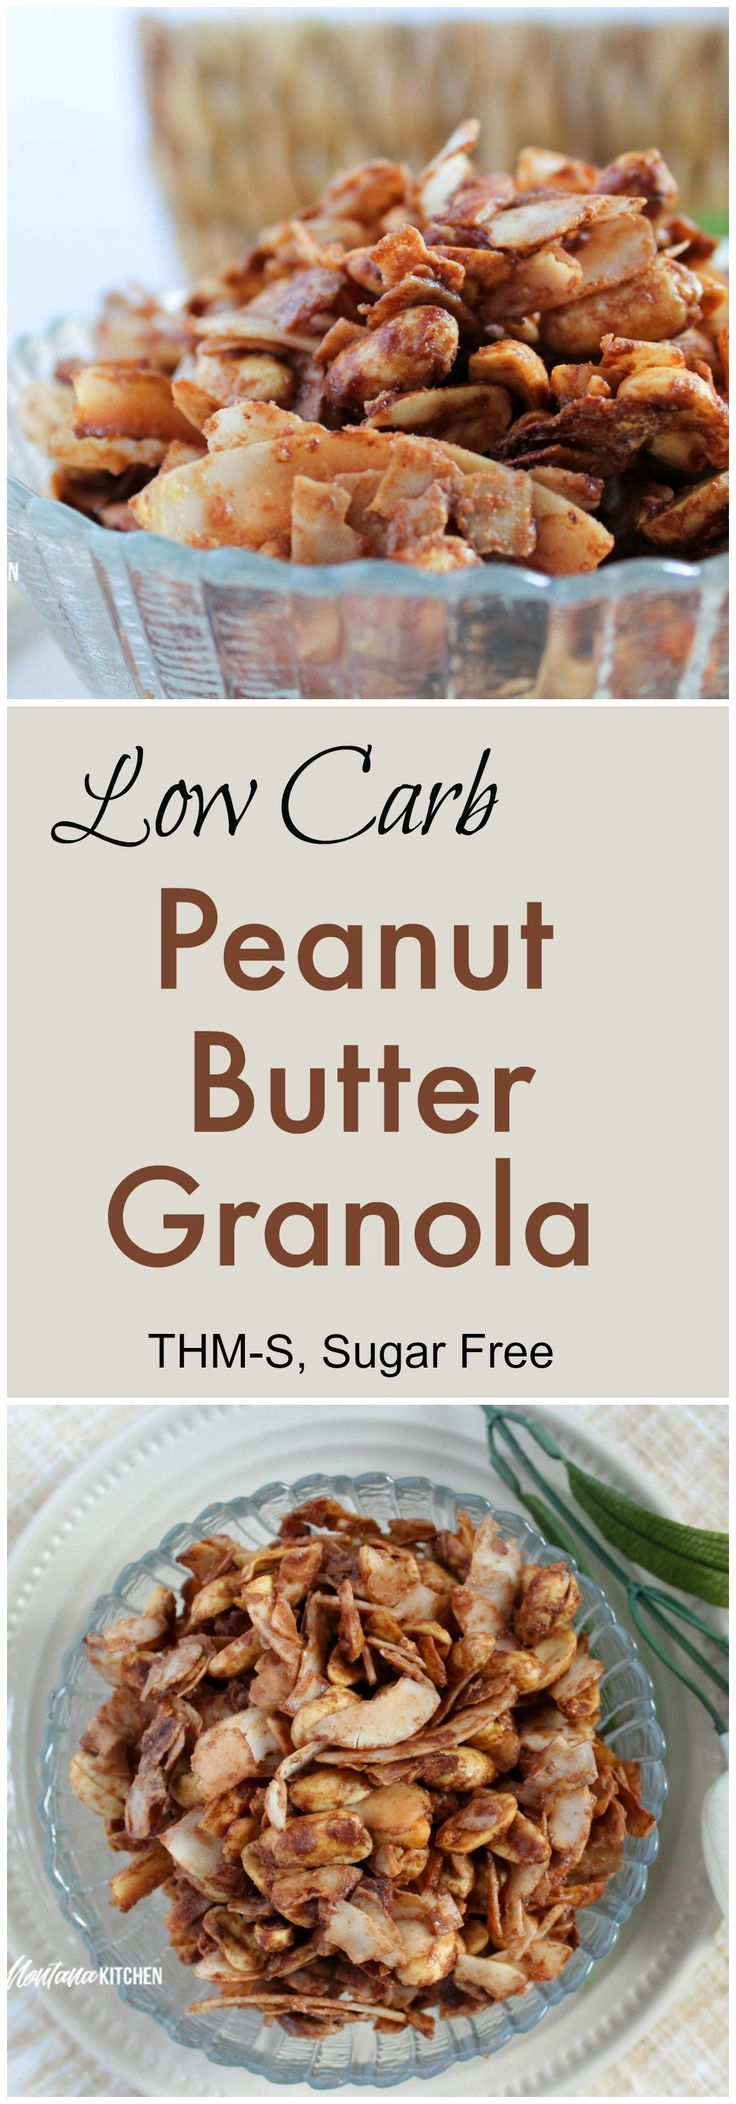 Low Carb Peanut Butter Granola (Sugar Free, THM-S) - My Montana Kitchen